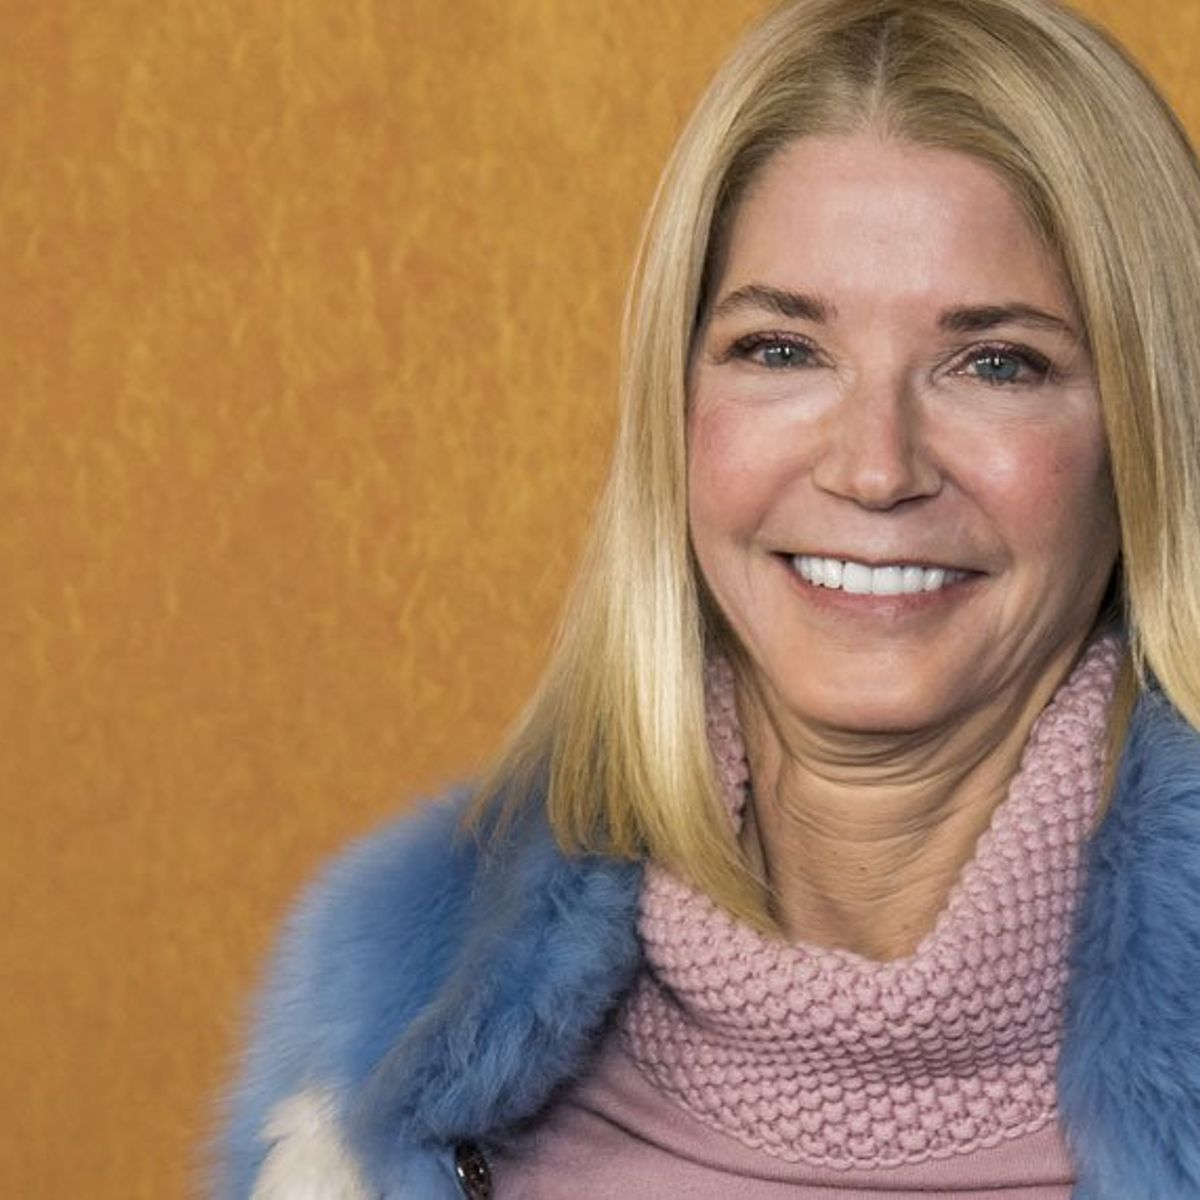 Candace Bushnell Talks About Her Second Feminist Book